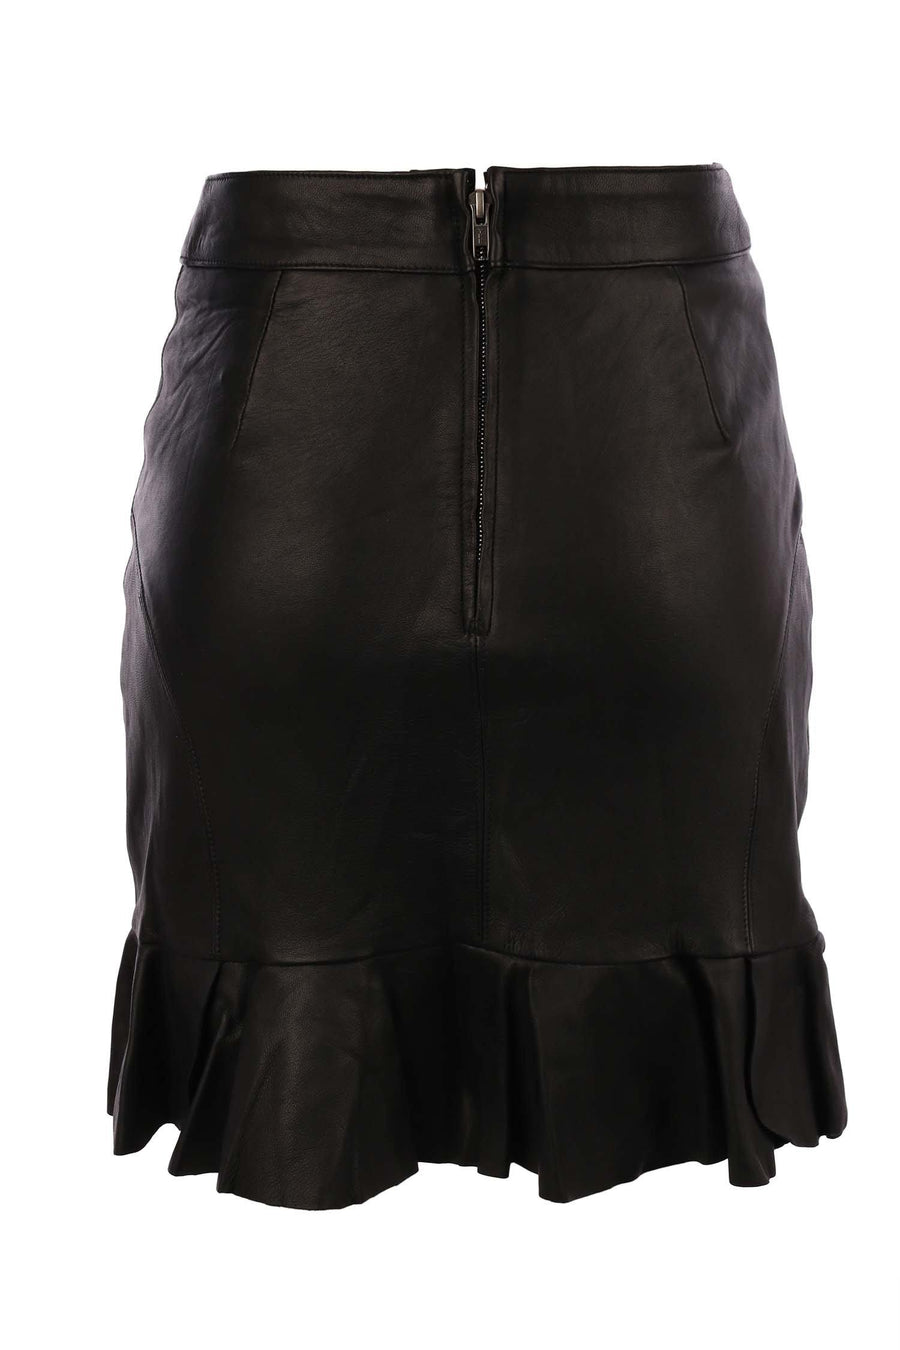 Mia Frill Skirt in Black